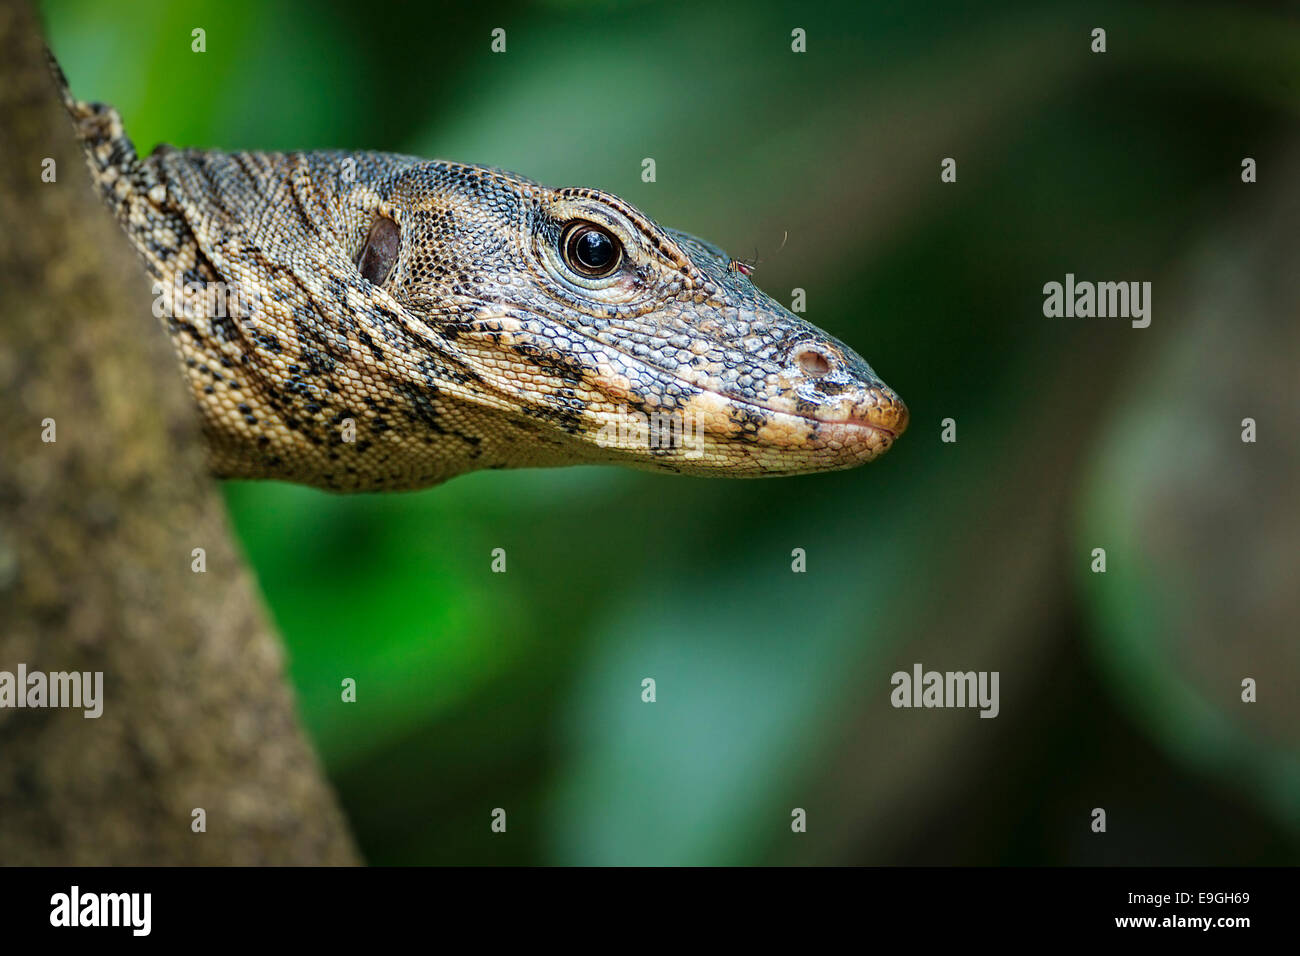 Malayan Water Monitor Lizard (Varanus salvator) climbing up a mangrove tree - Stock Image